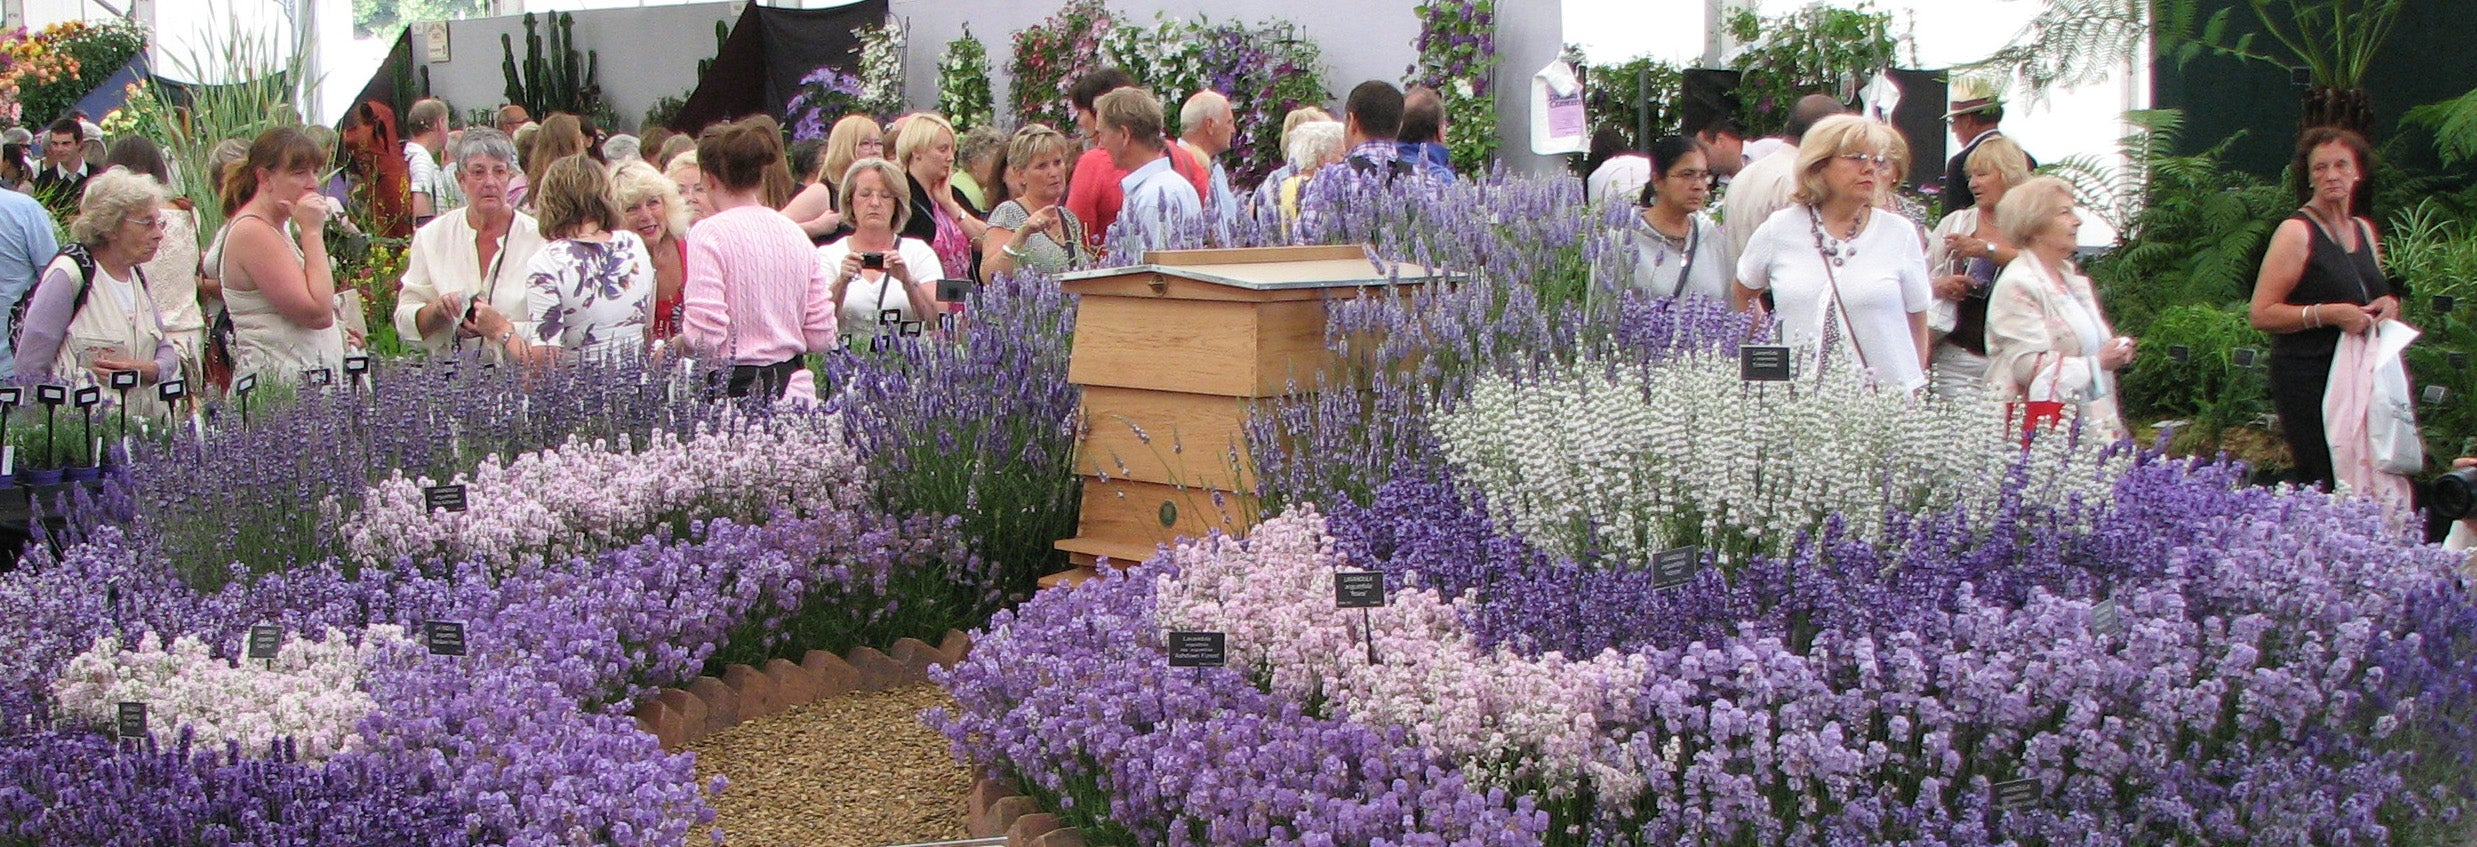 Floral Marquee, Hampton Court show